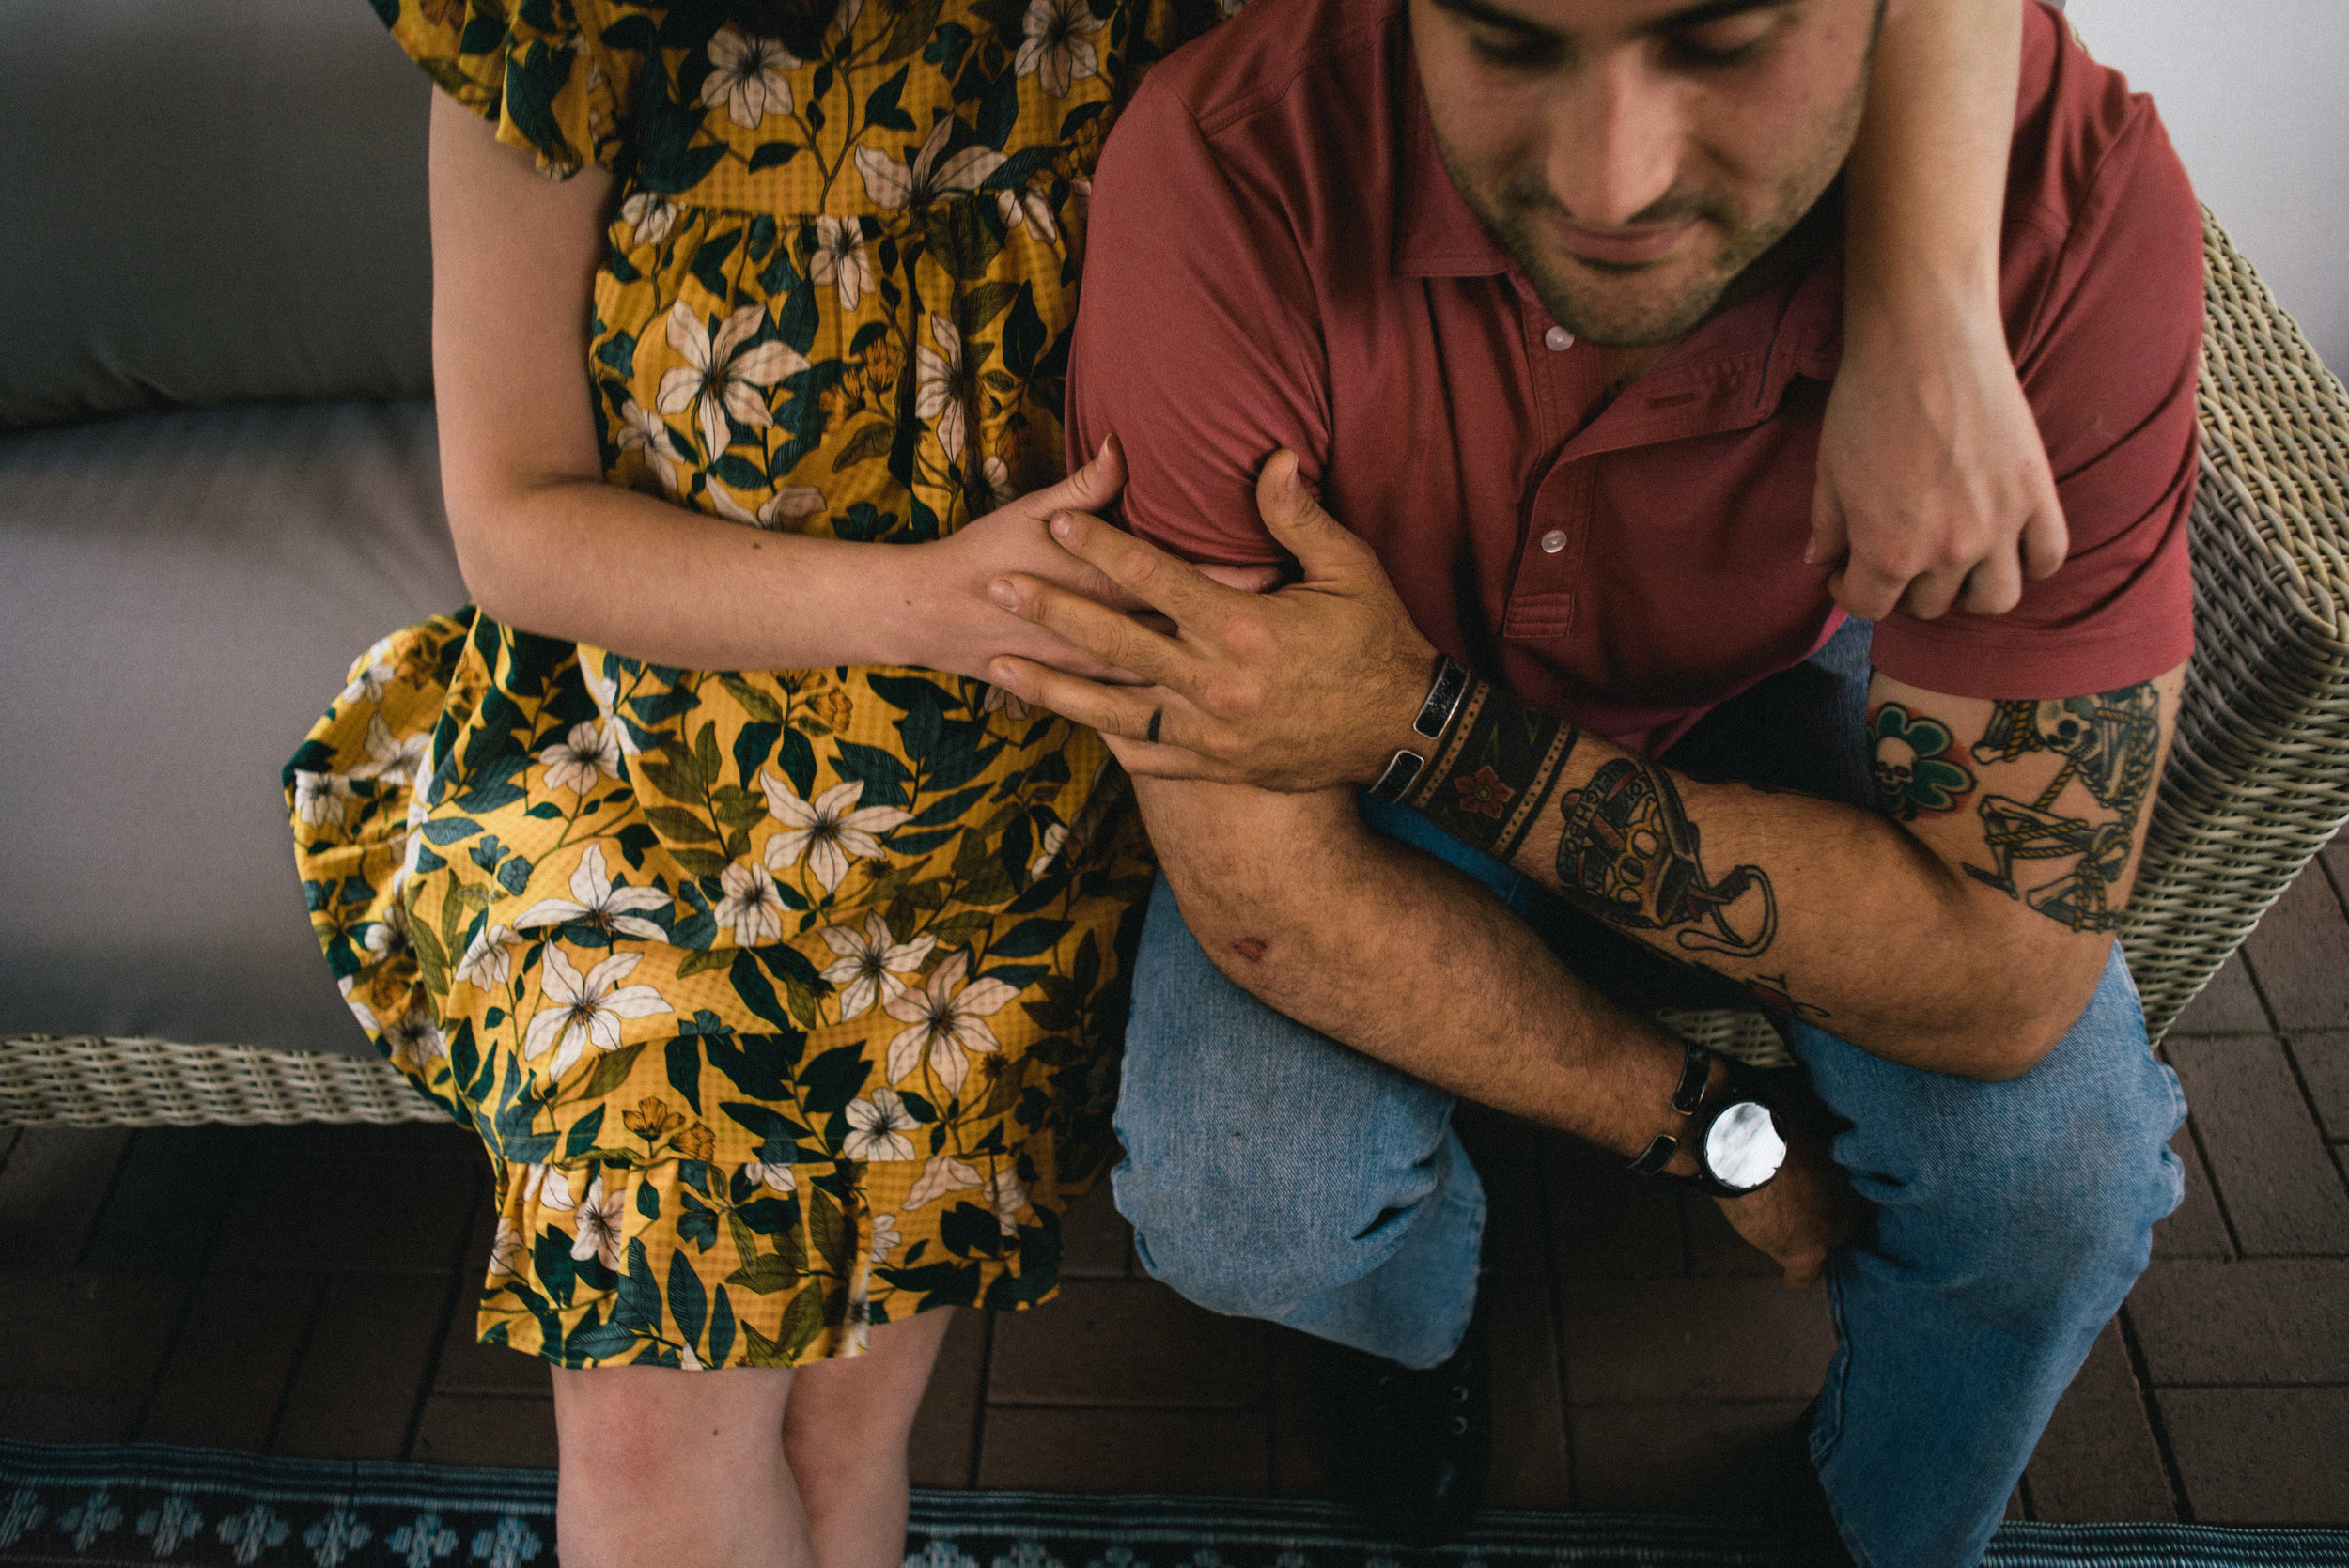 ellie-and-anthony-maternity-photos-june-2018 (19 of 189).jpg